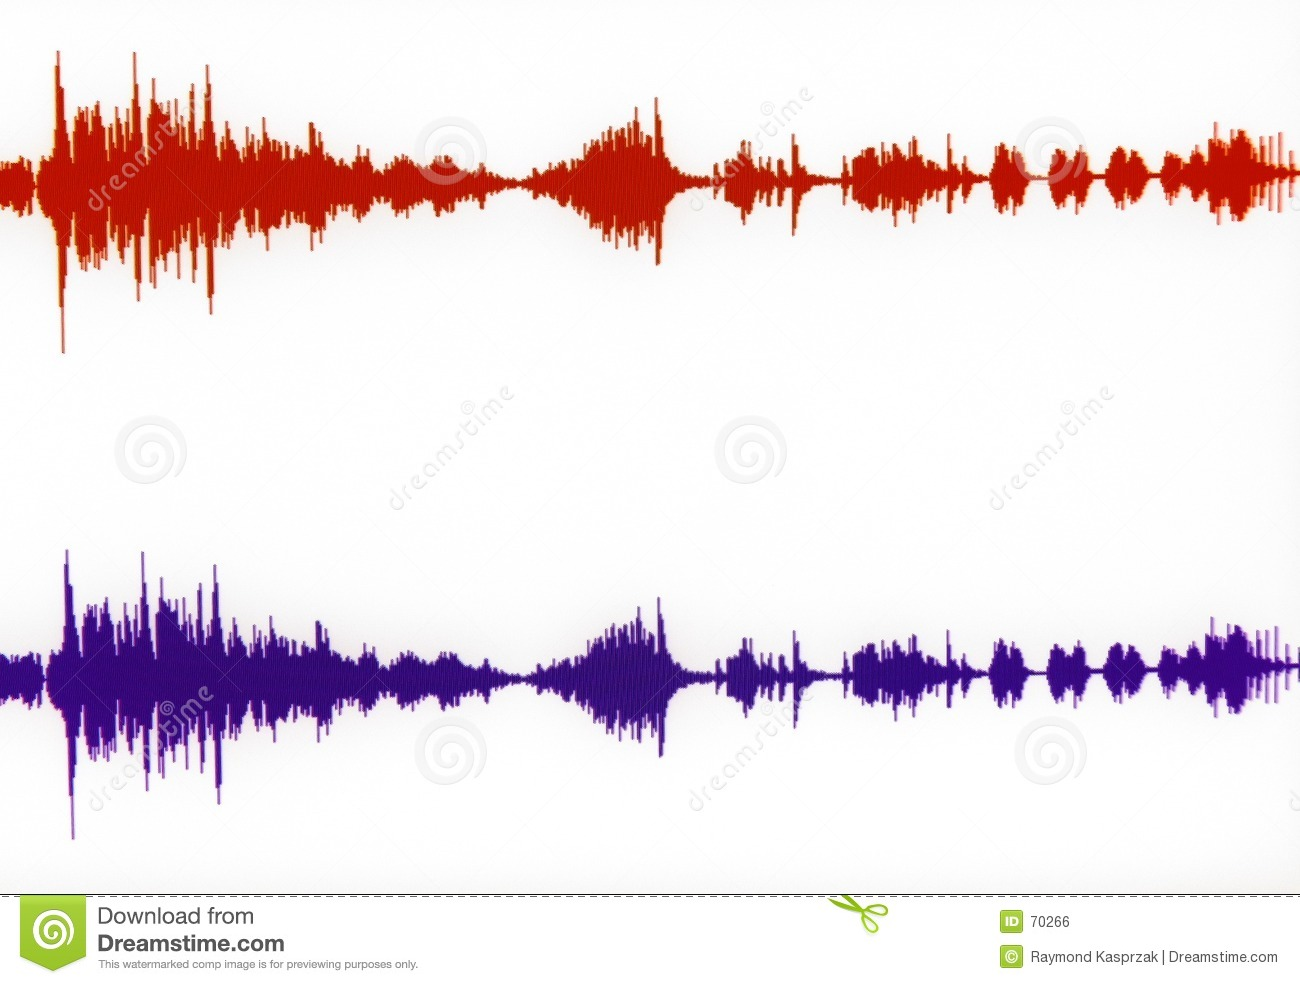 waveform download